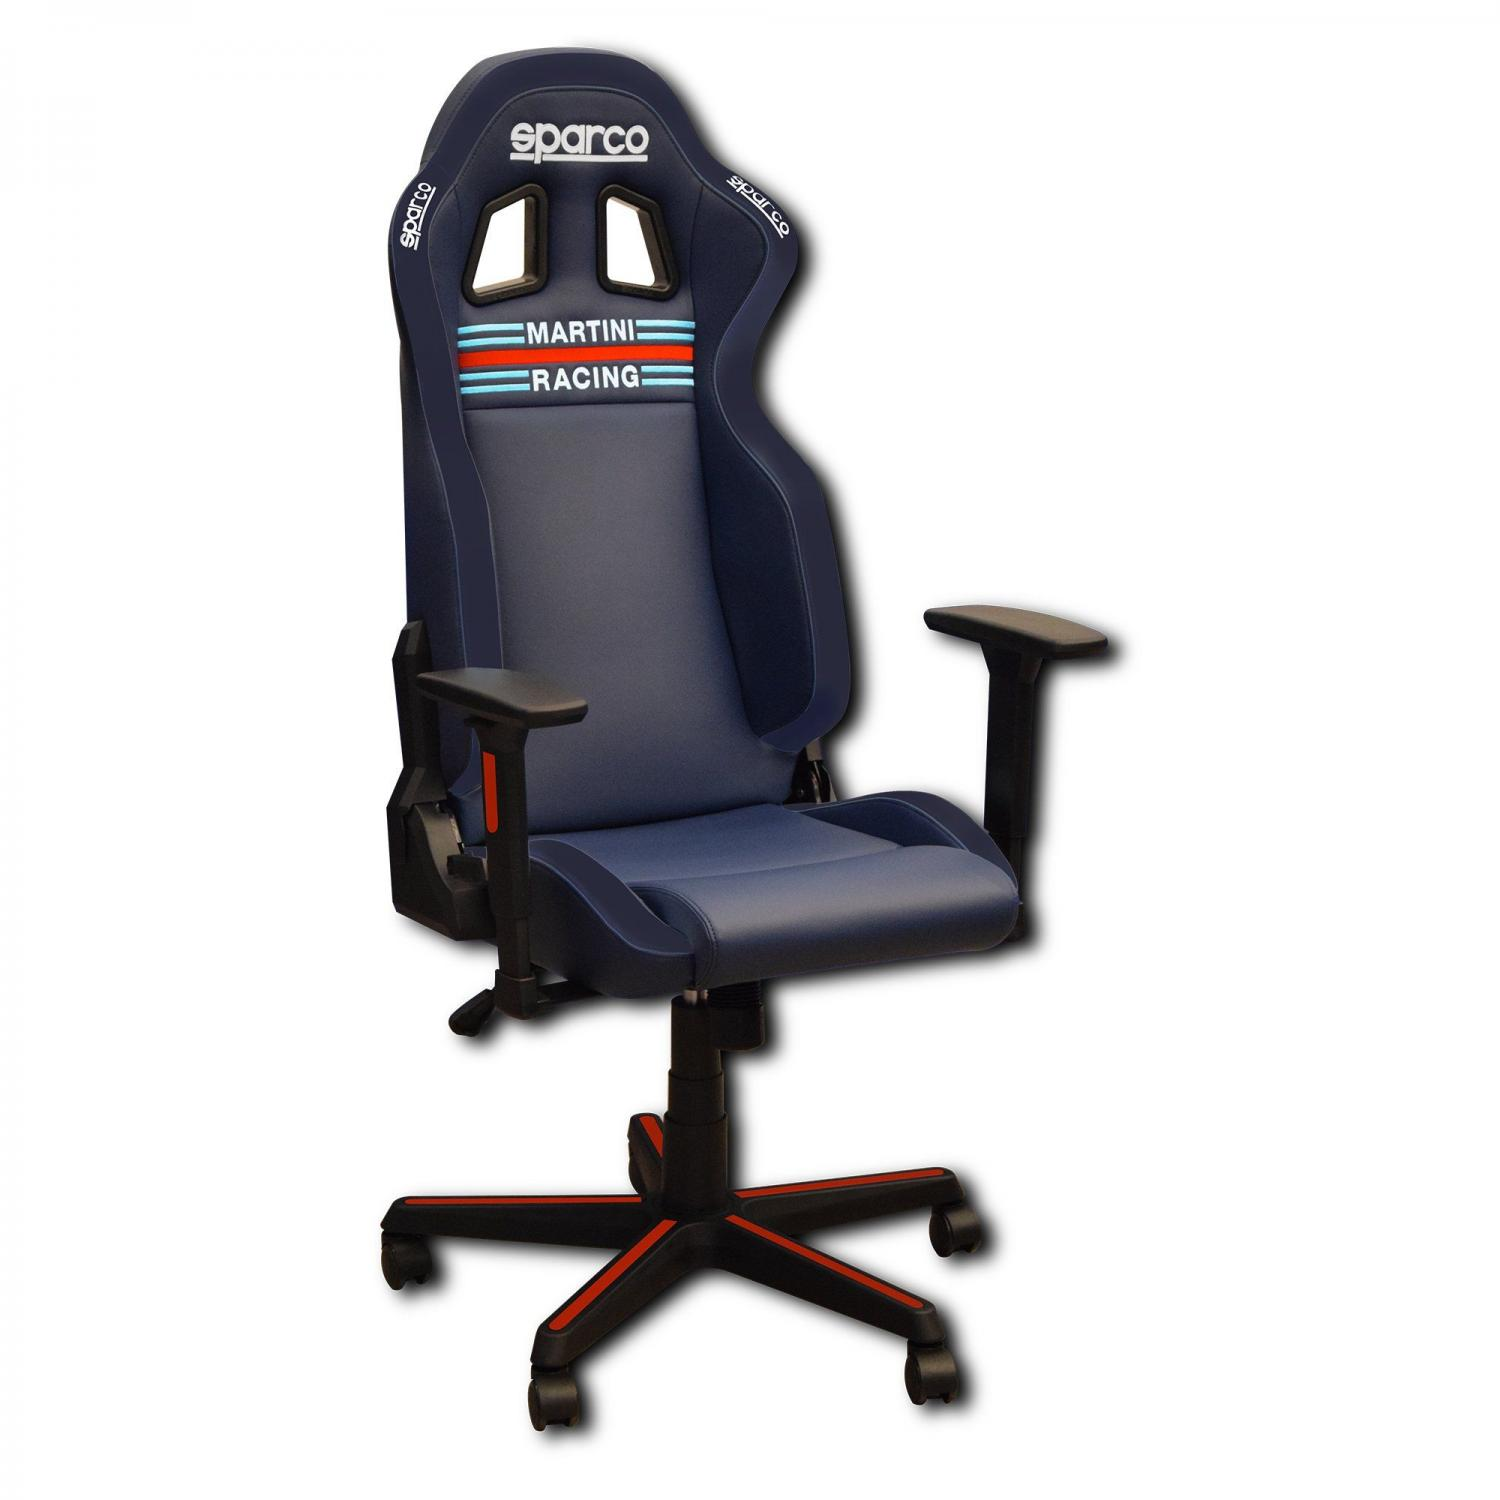 Office chair / Gaming chair Icon Sparco Martini Racing